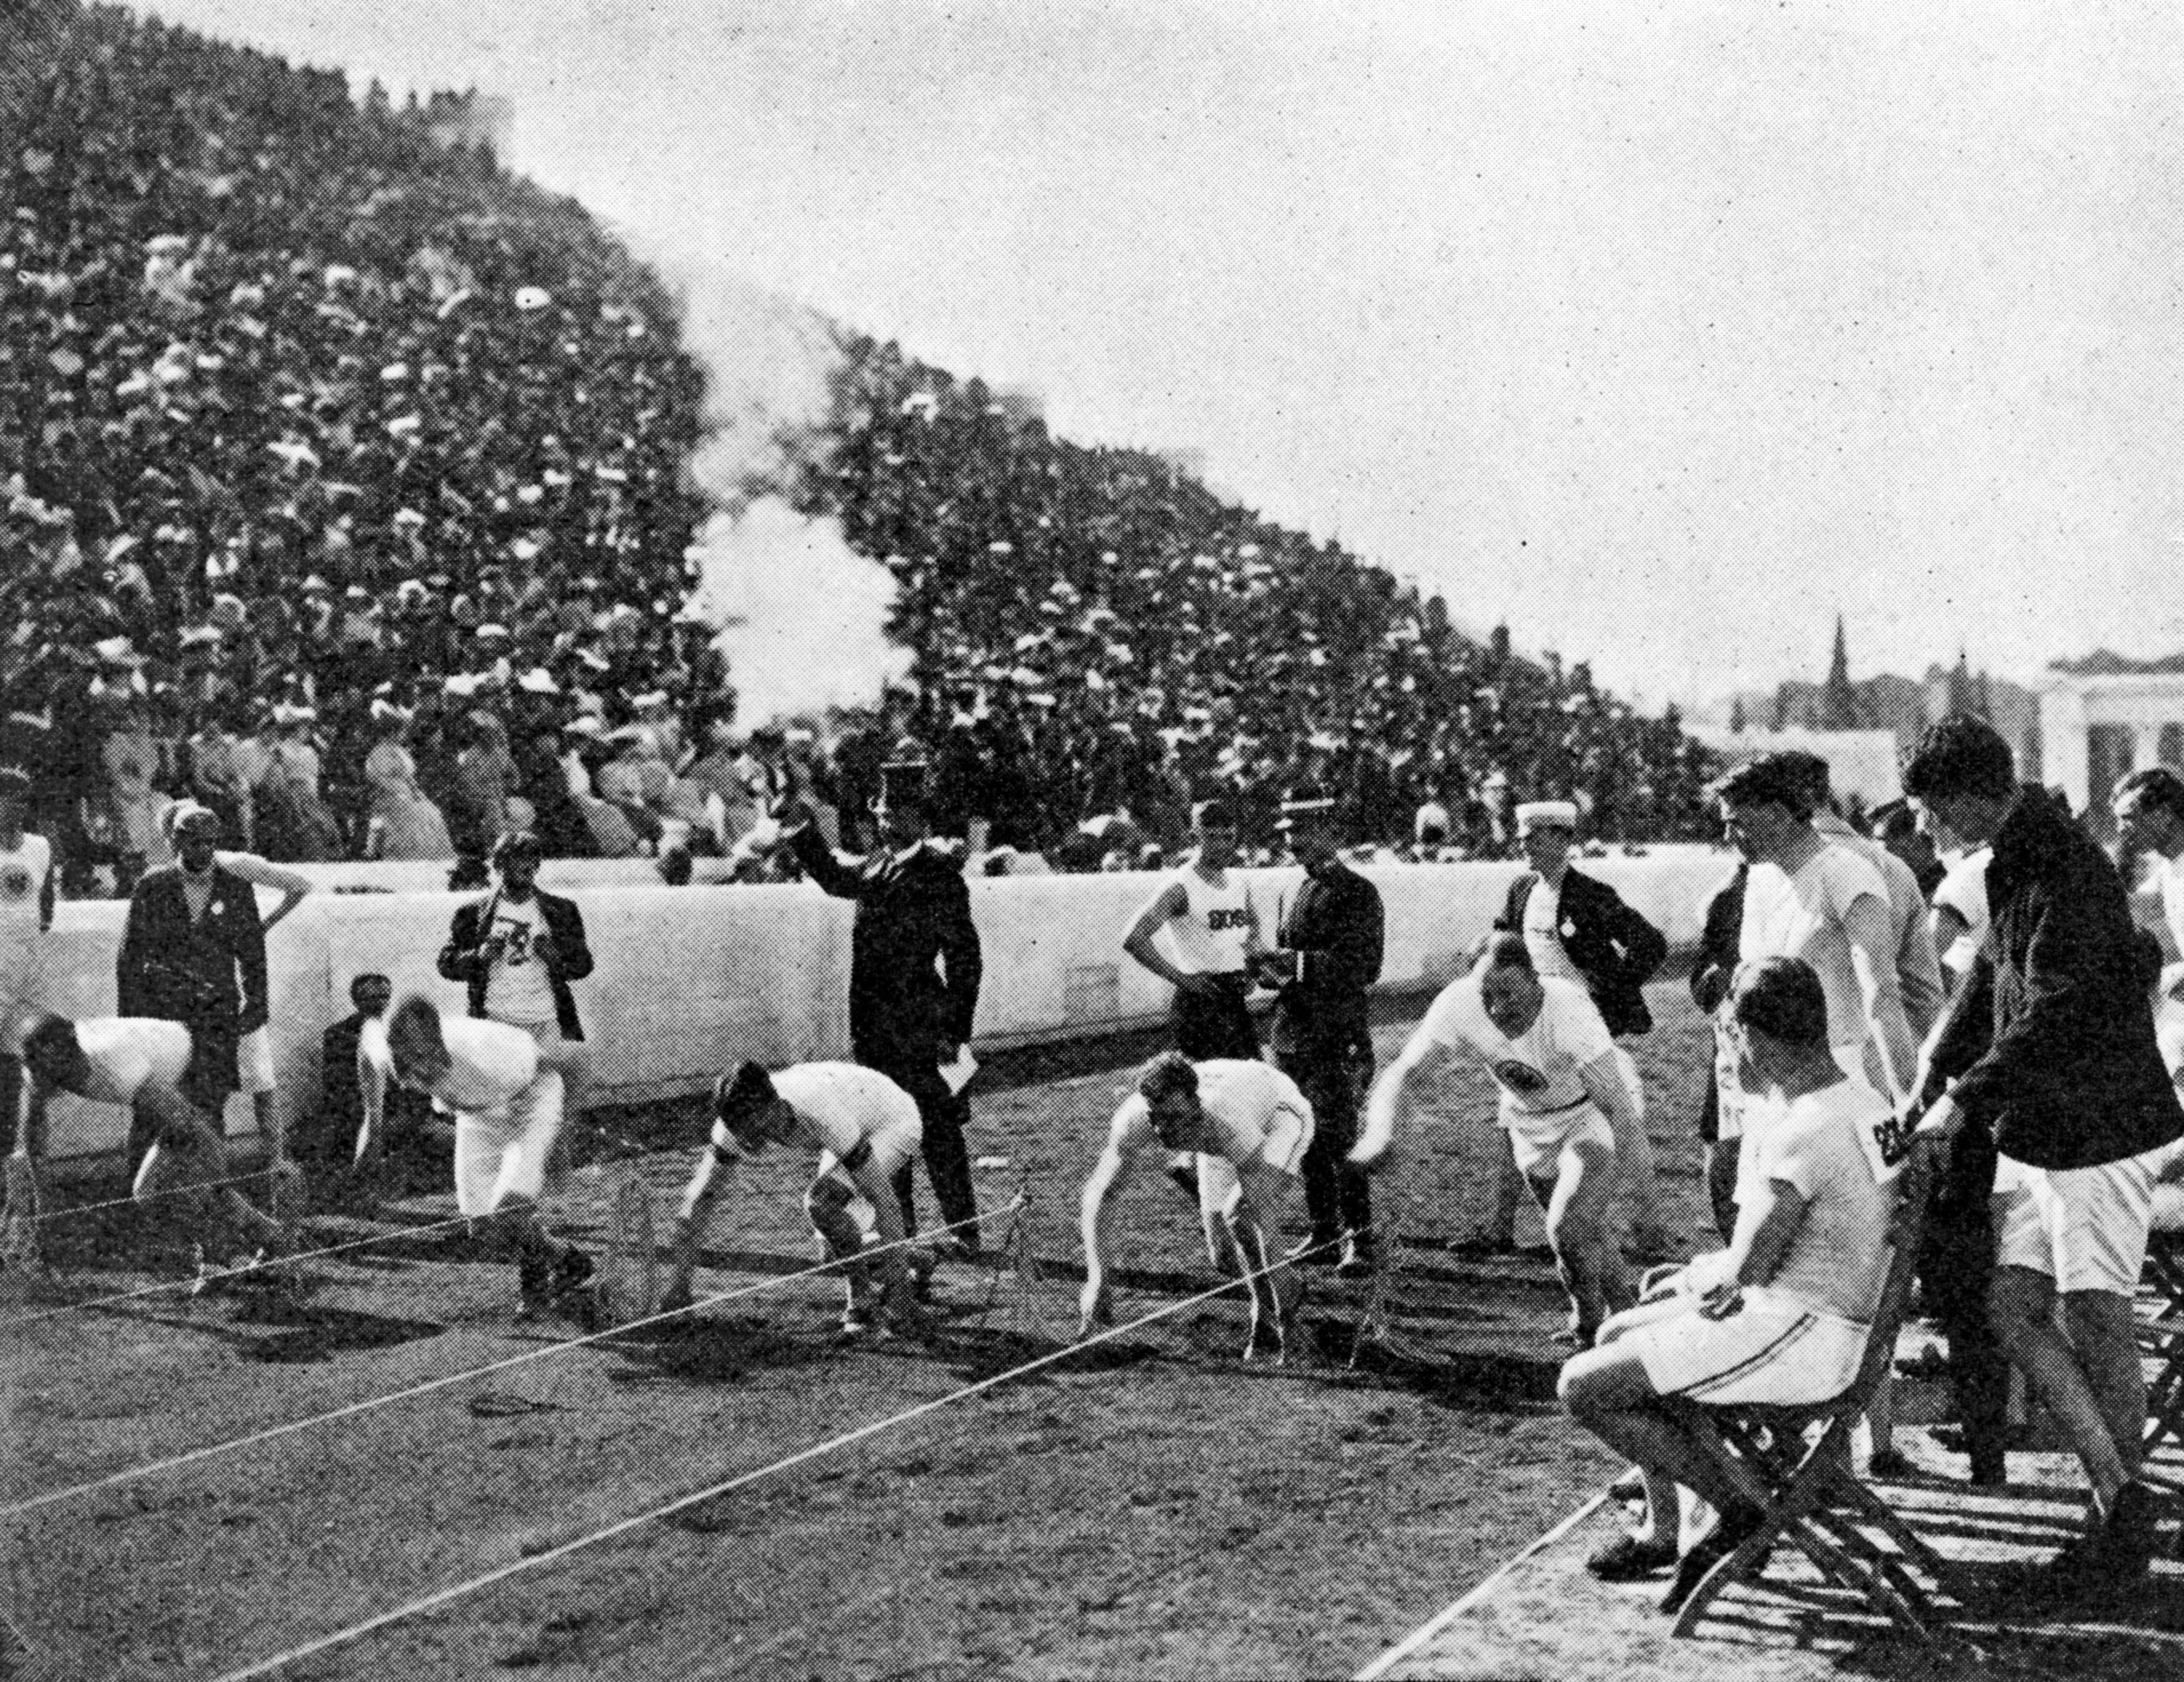 8e86294c475 Archie Hahn (second from right) on his way to victory in the 1906 Olympic  100-meter final. Hulton Archive Getty Images